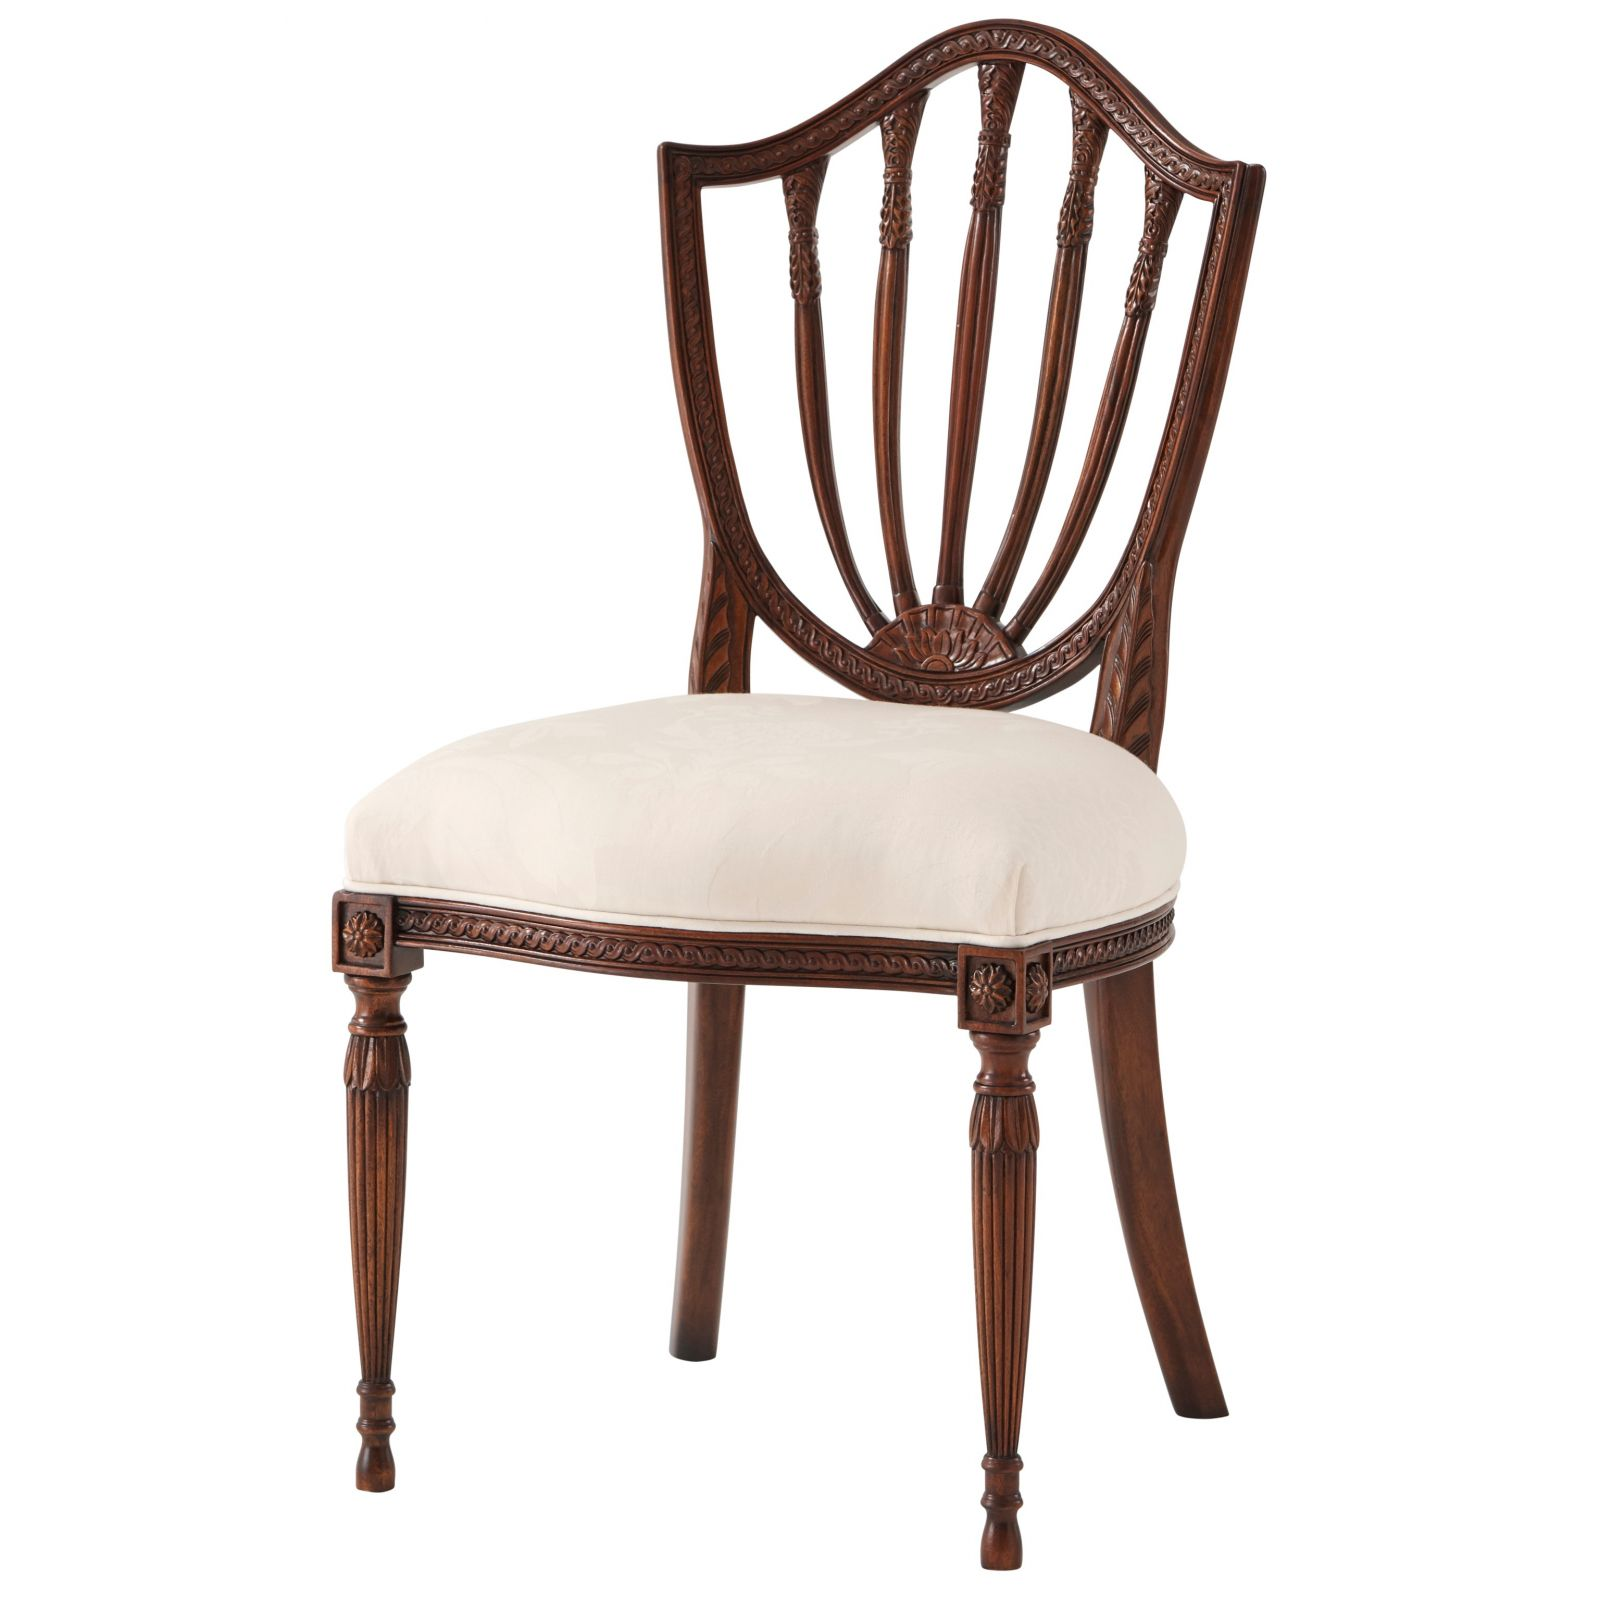 Hepplewhite style dining chair with Isle Mill Scottish wool seat fabric